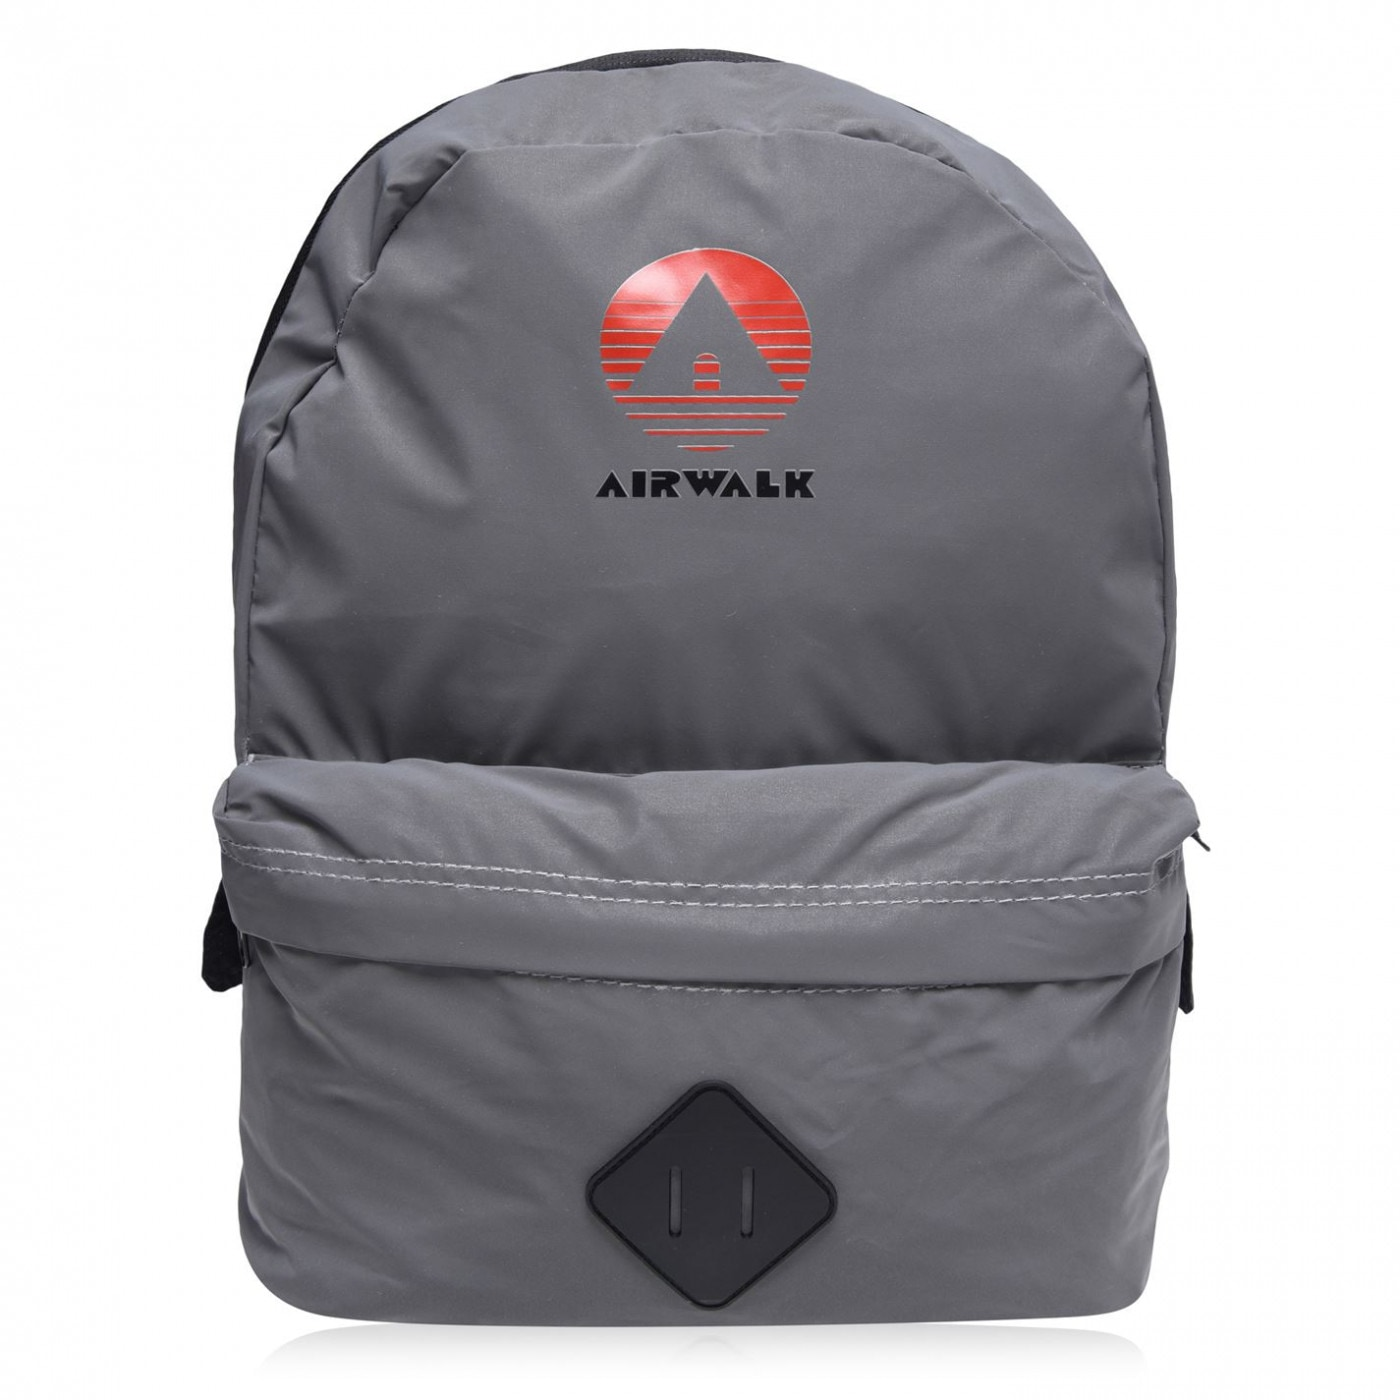 Airwalk Elite Bpack Sn01